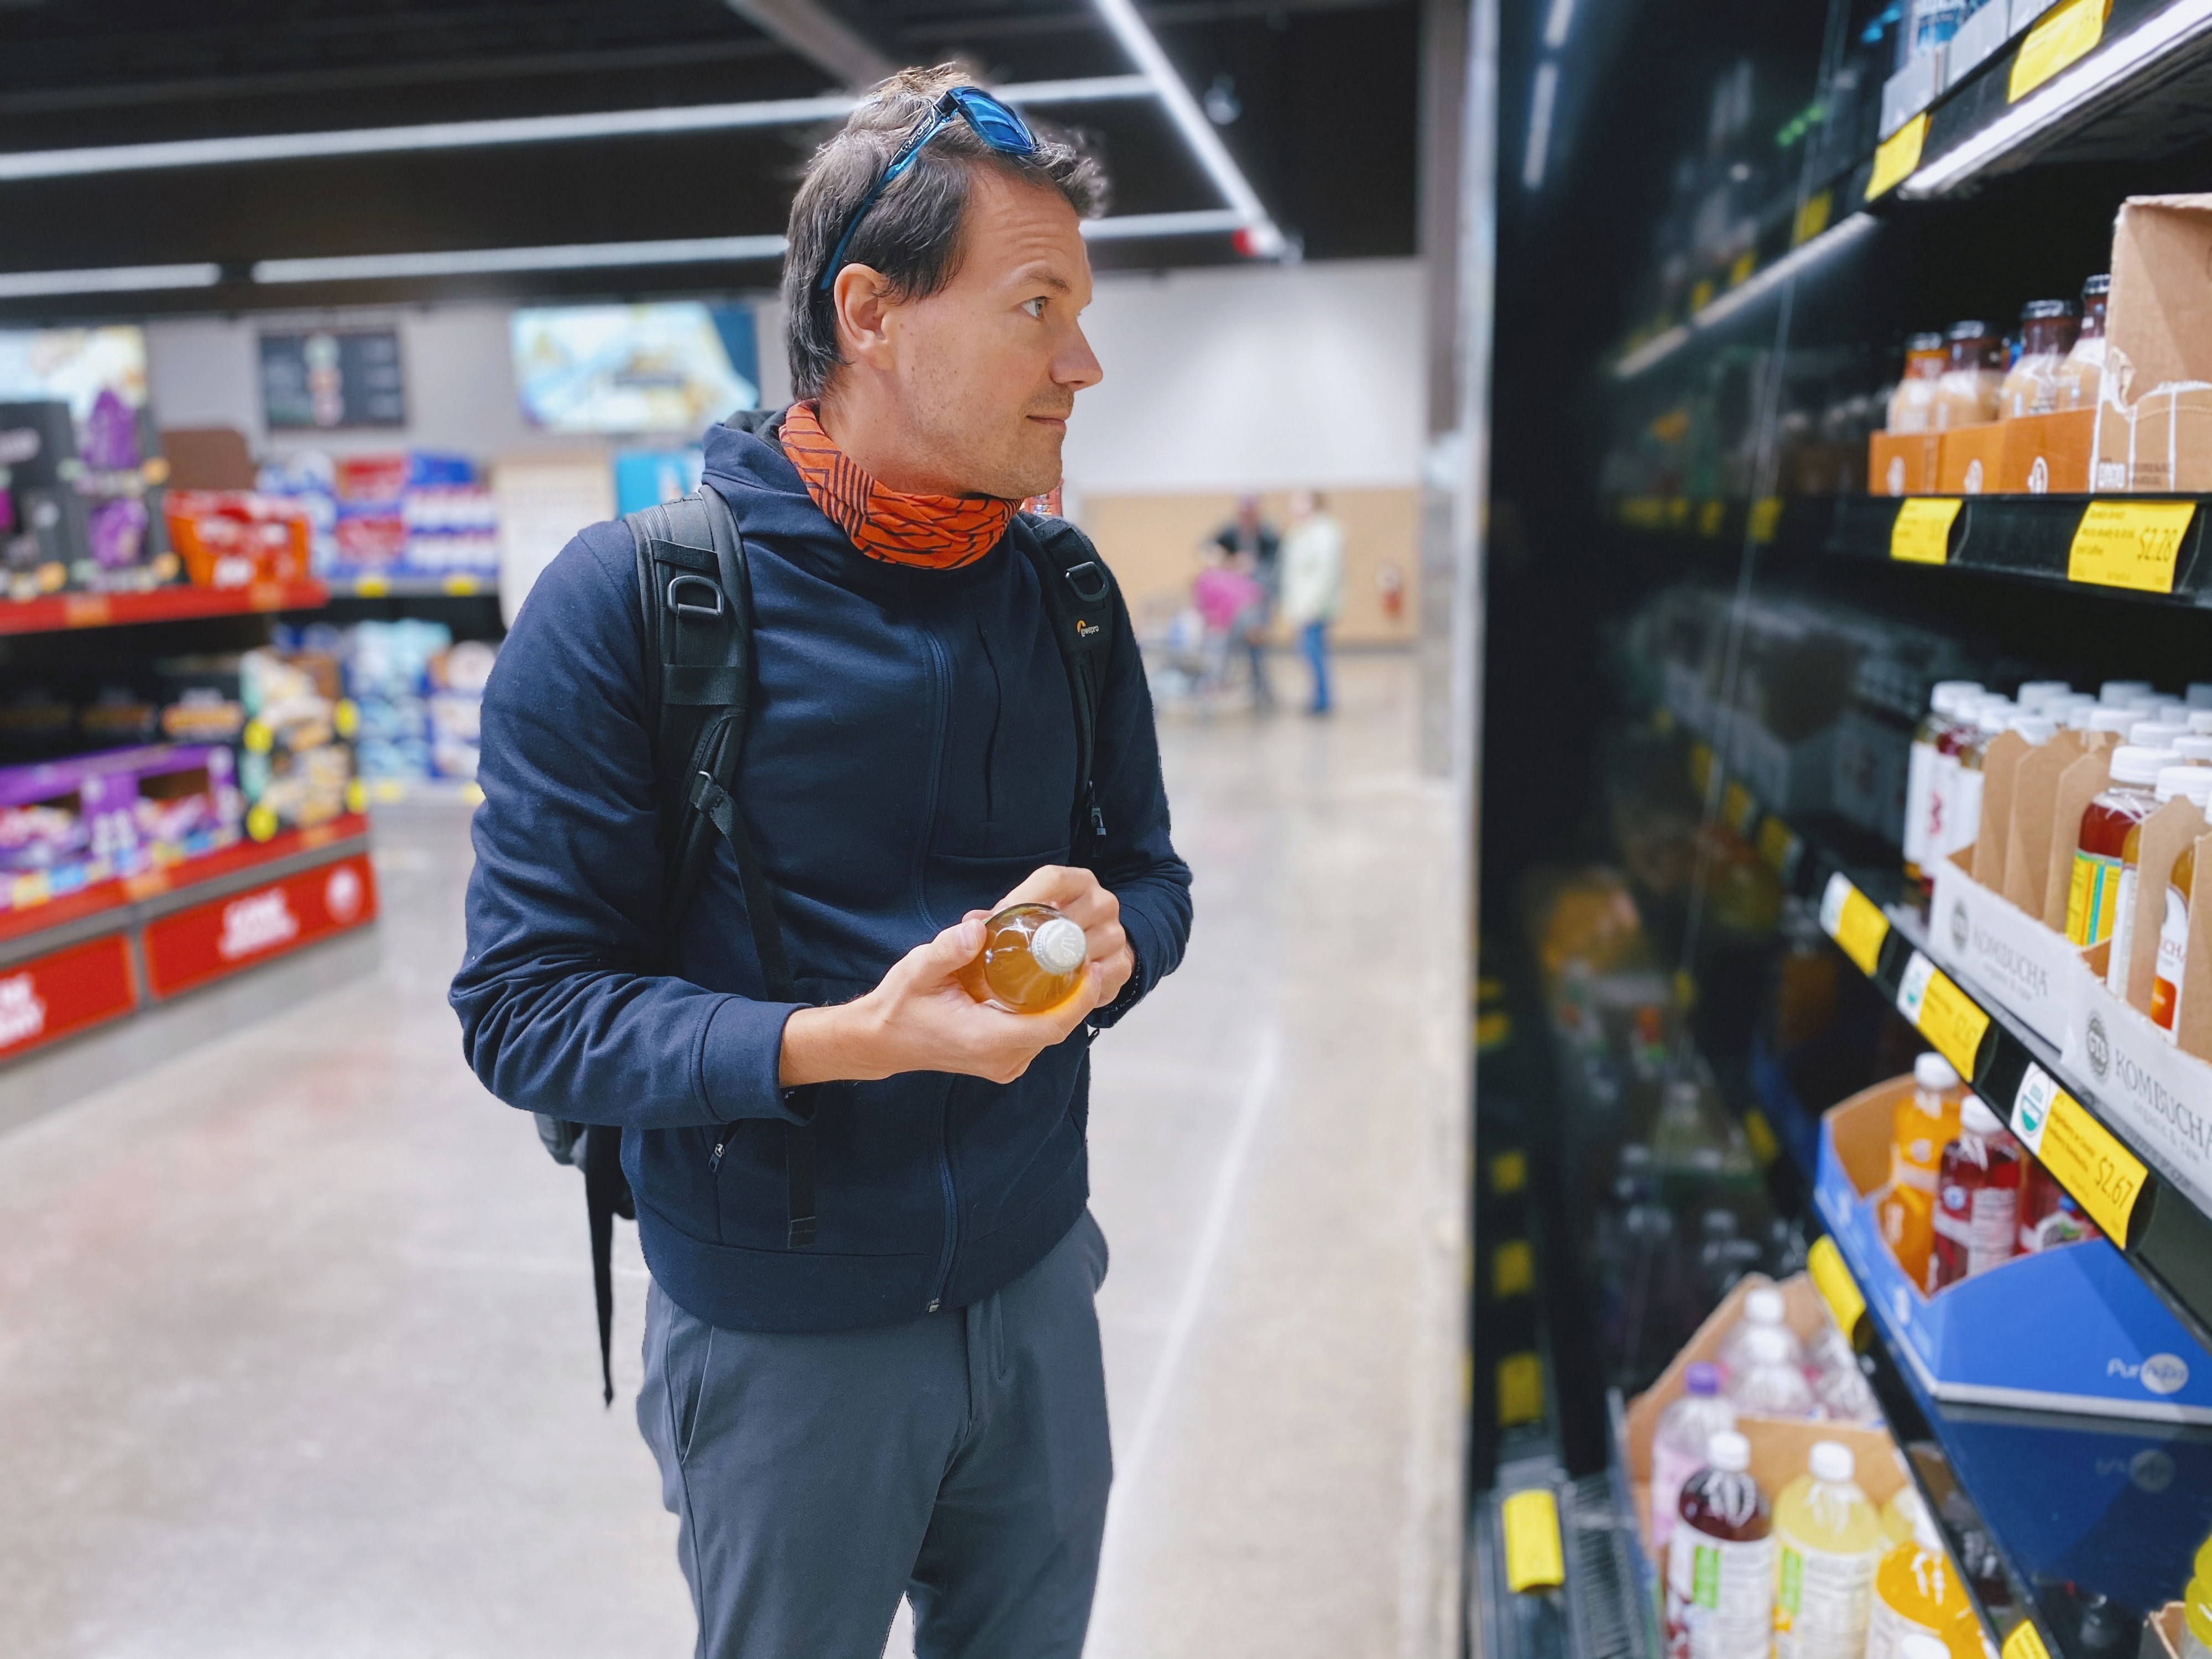 Man looks at juices in the grocery store.